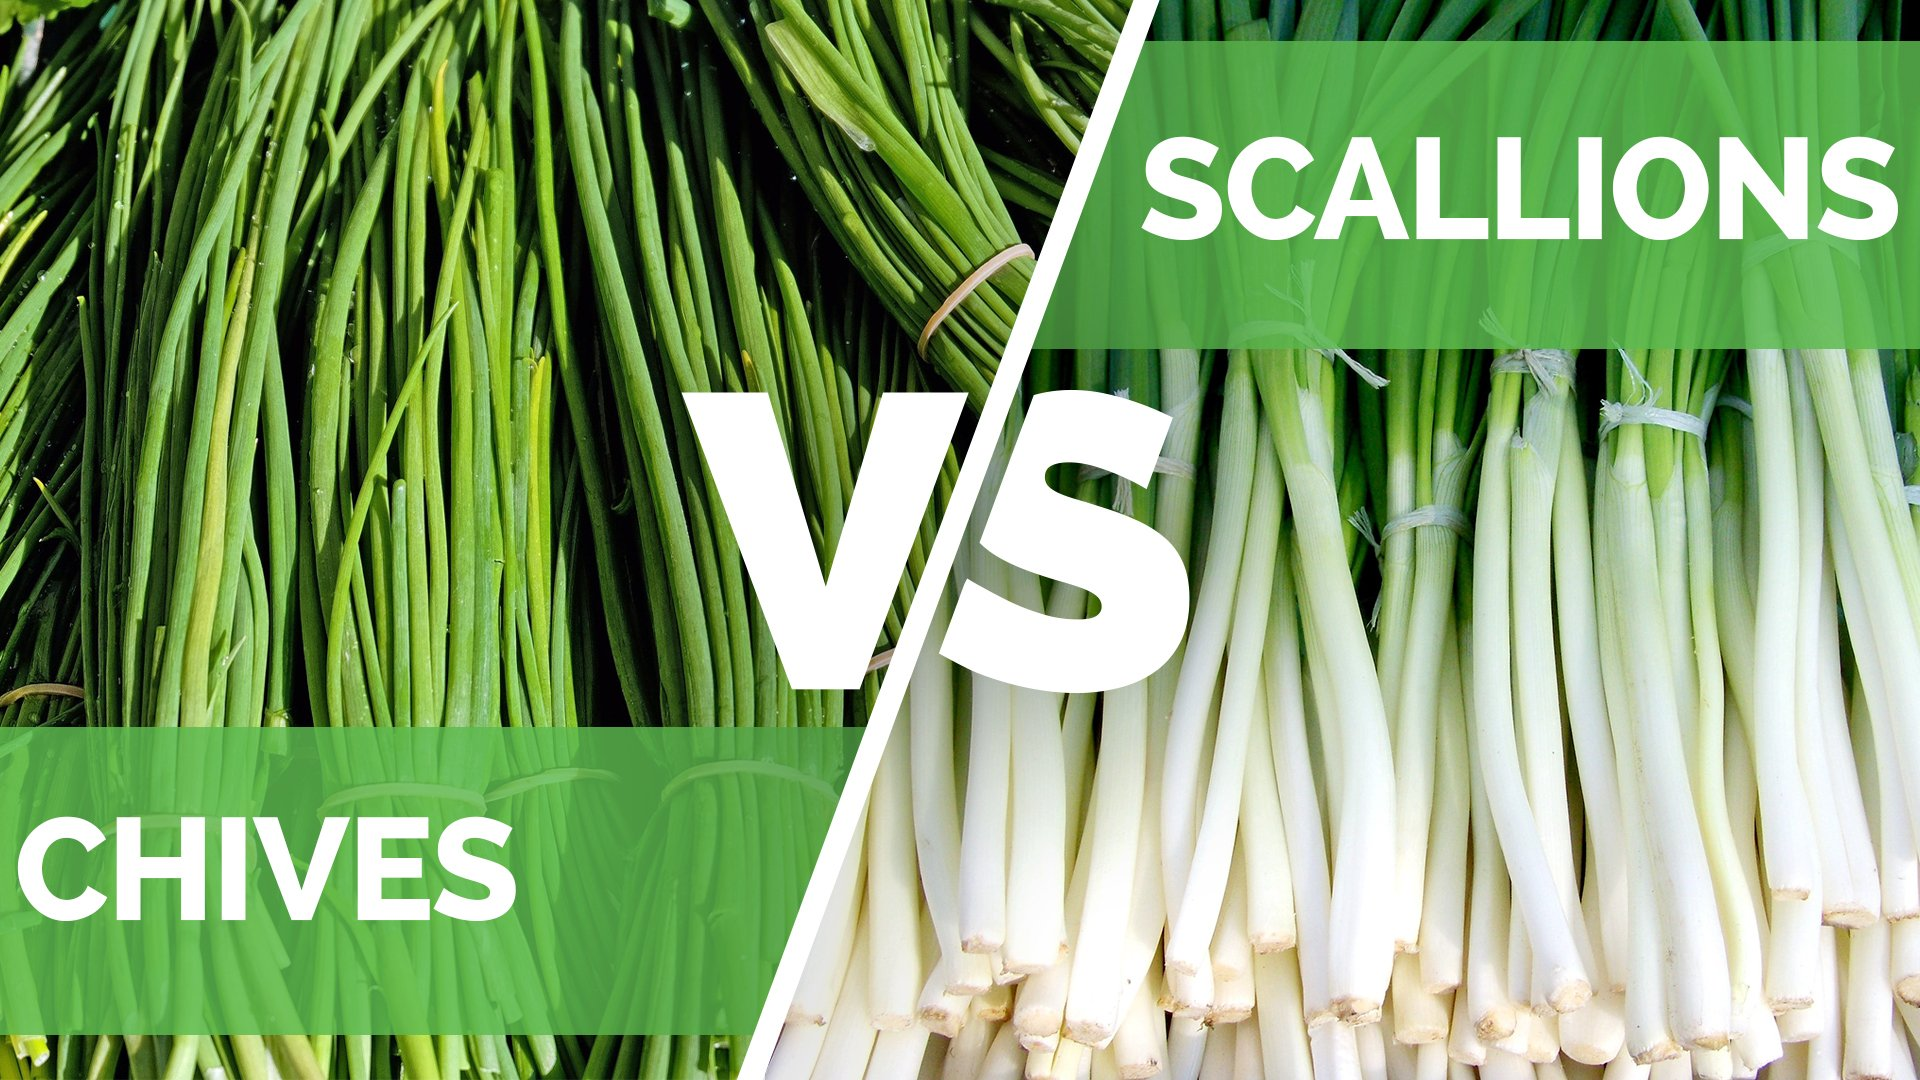 Chives vs Scallions - What's the Difference